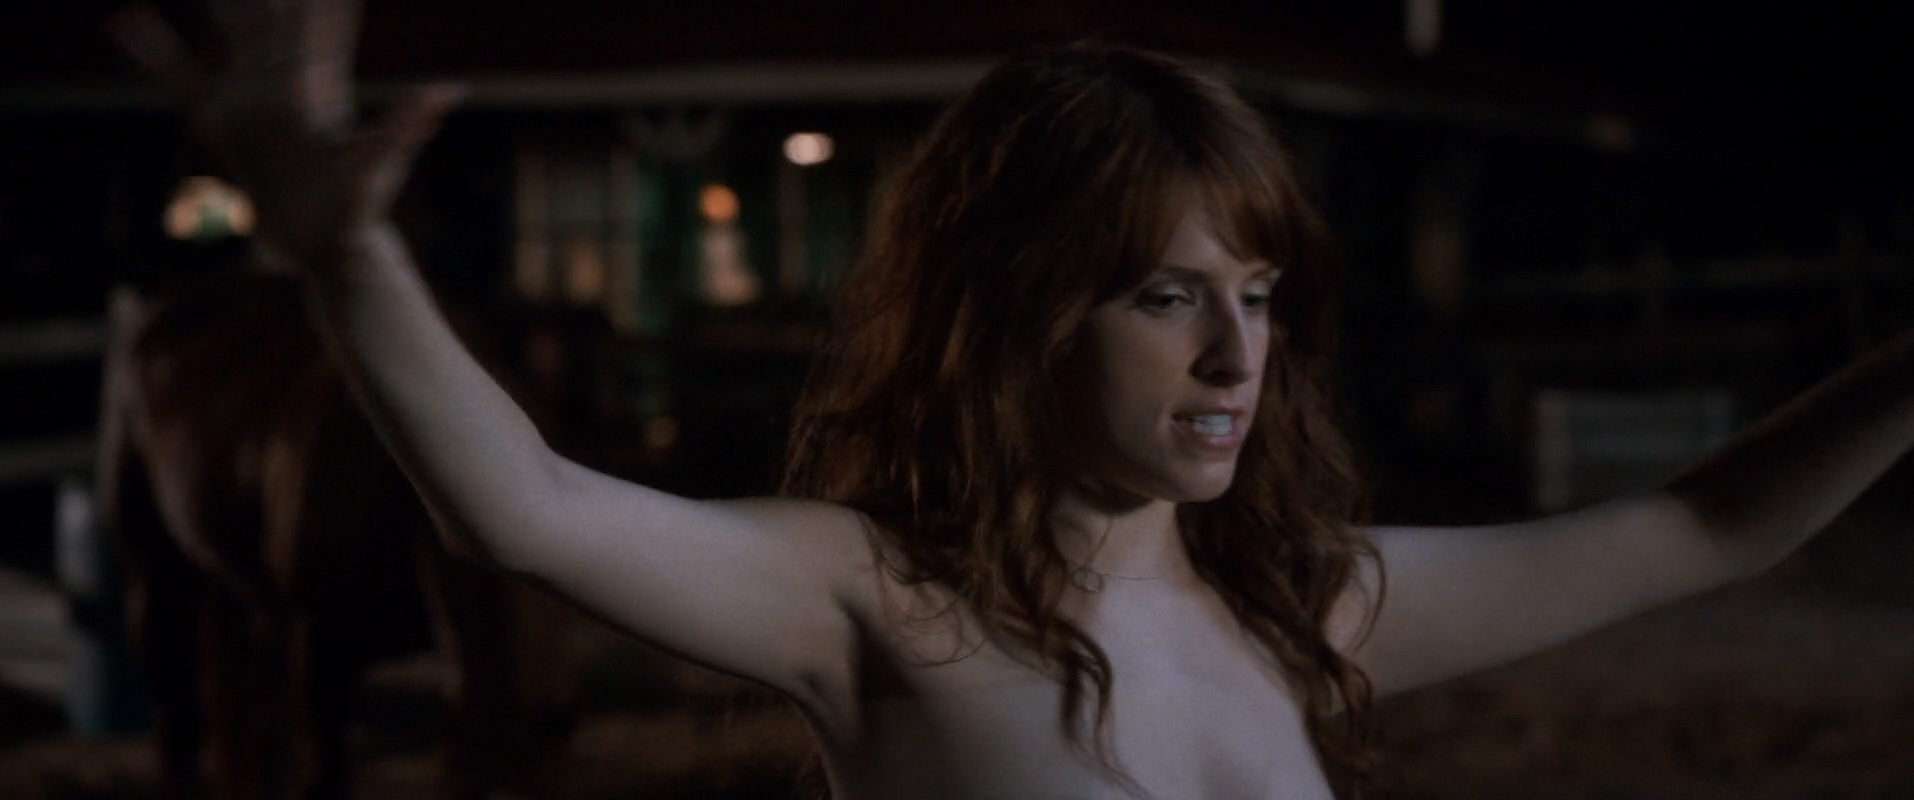 Anna Kendrick nude pics, page - 1 < ANCENSORED